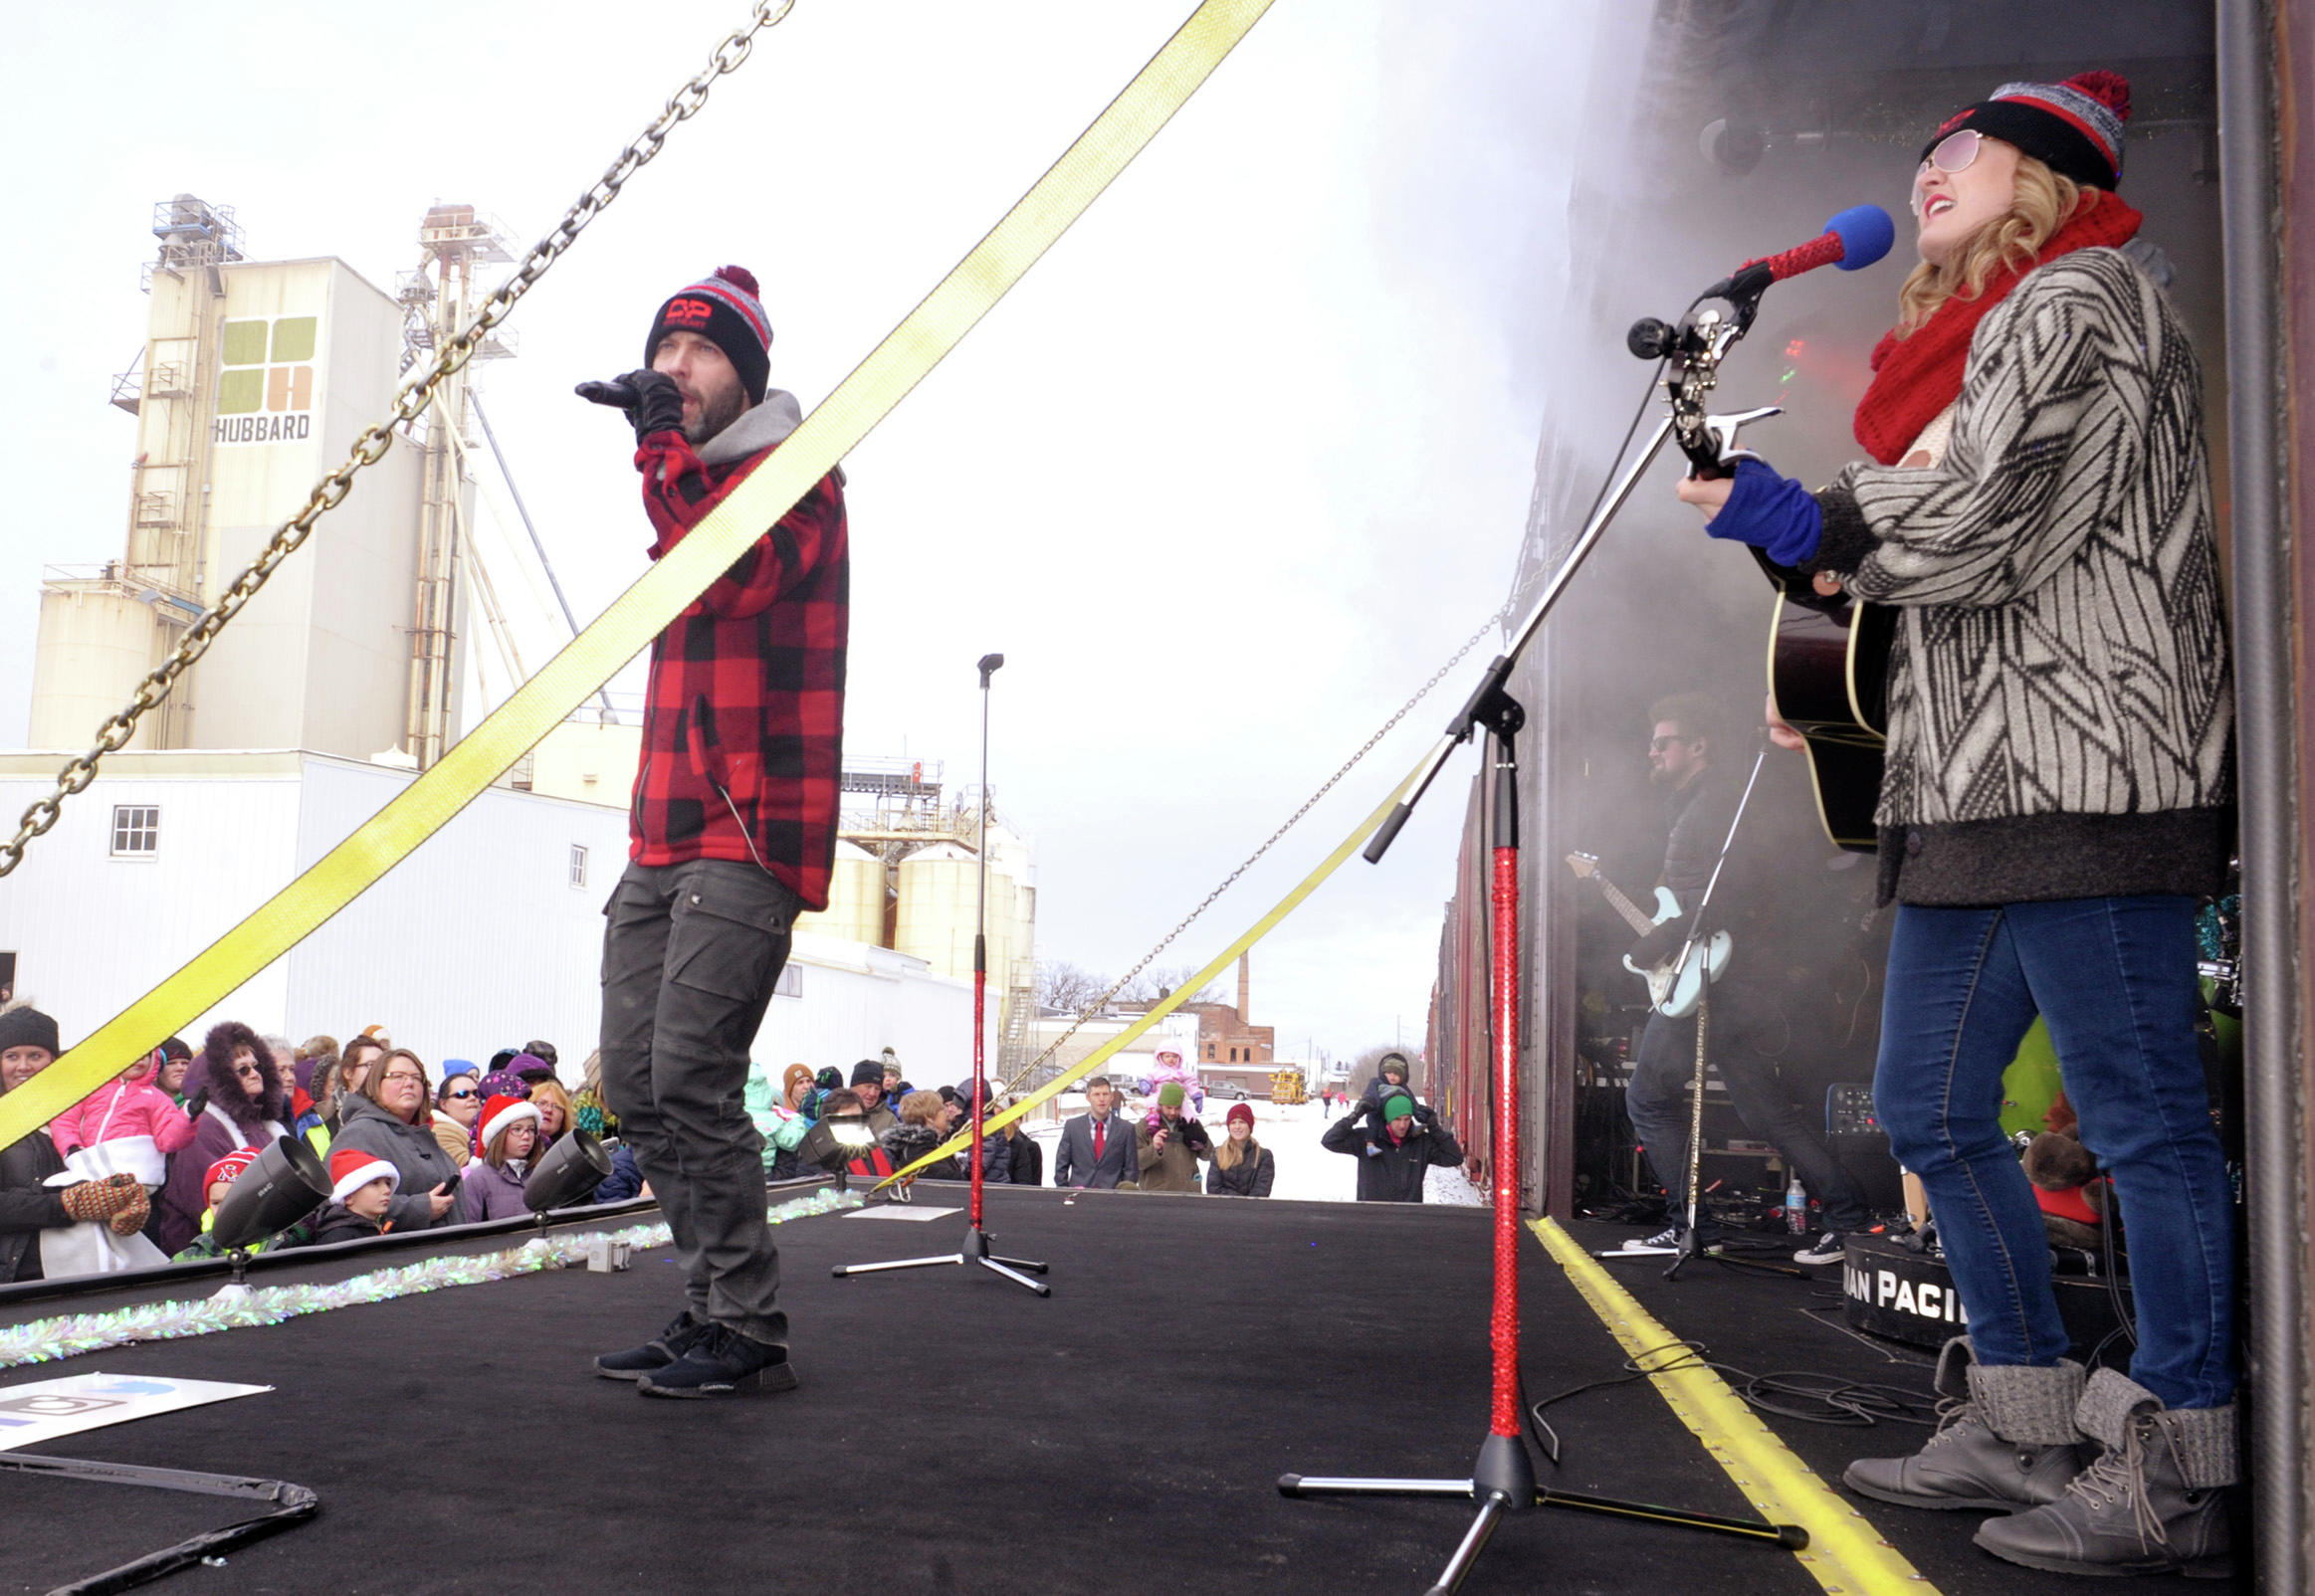 Dallas Smith, Kelly Prescott and the rest of the band perform on the Holiday Train for the audience at the Eighth Avenue crossing in Alexandria in December 2017. The Holiday Train has been running for nearly two decades as a fundraiser for supporting food banks. (Lowell Anderson / Echo Press)